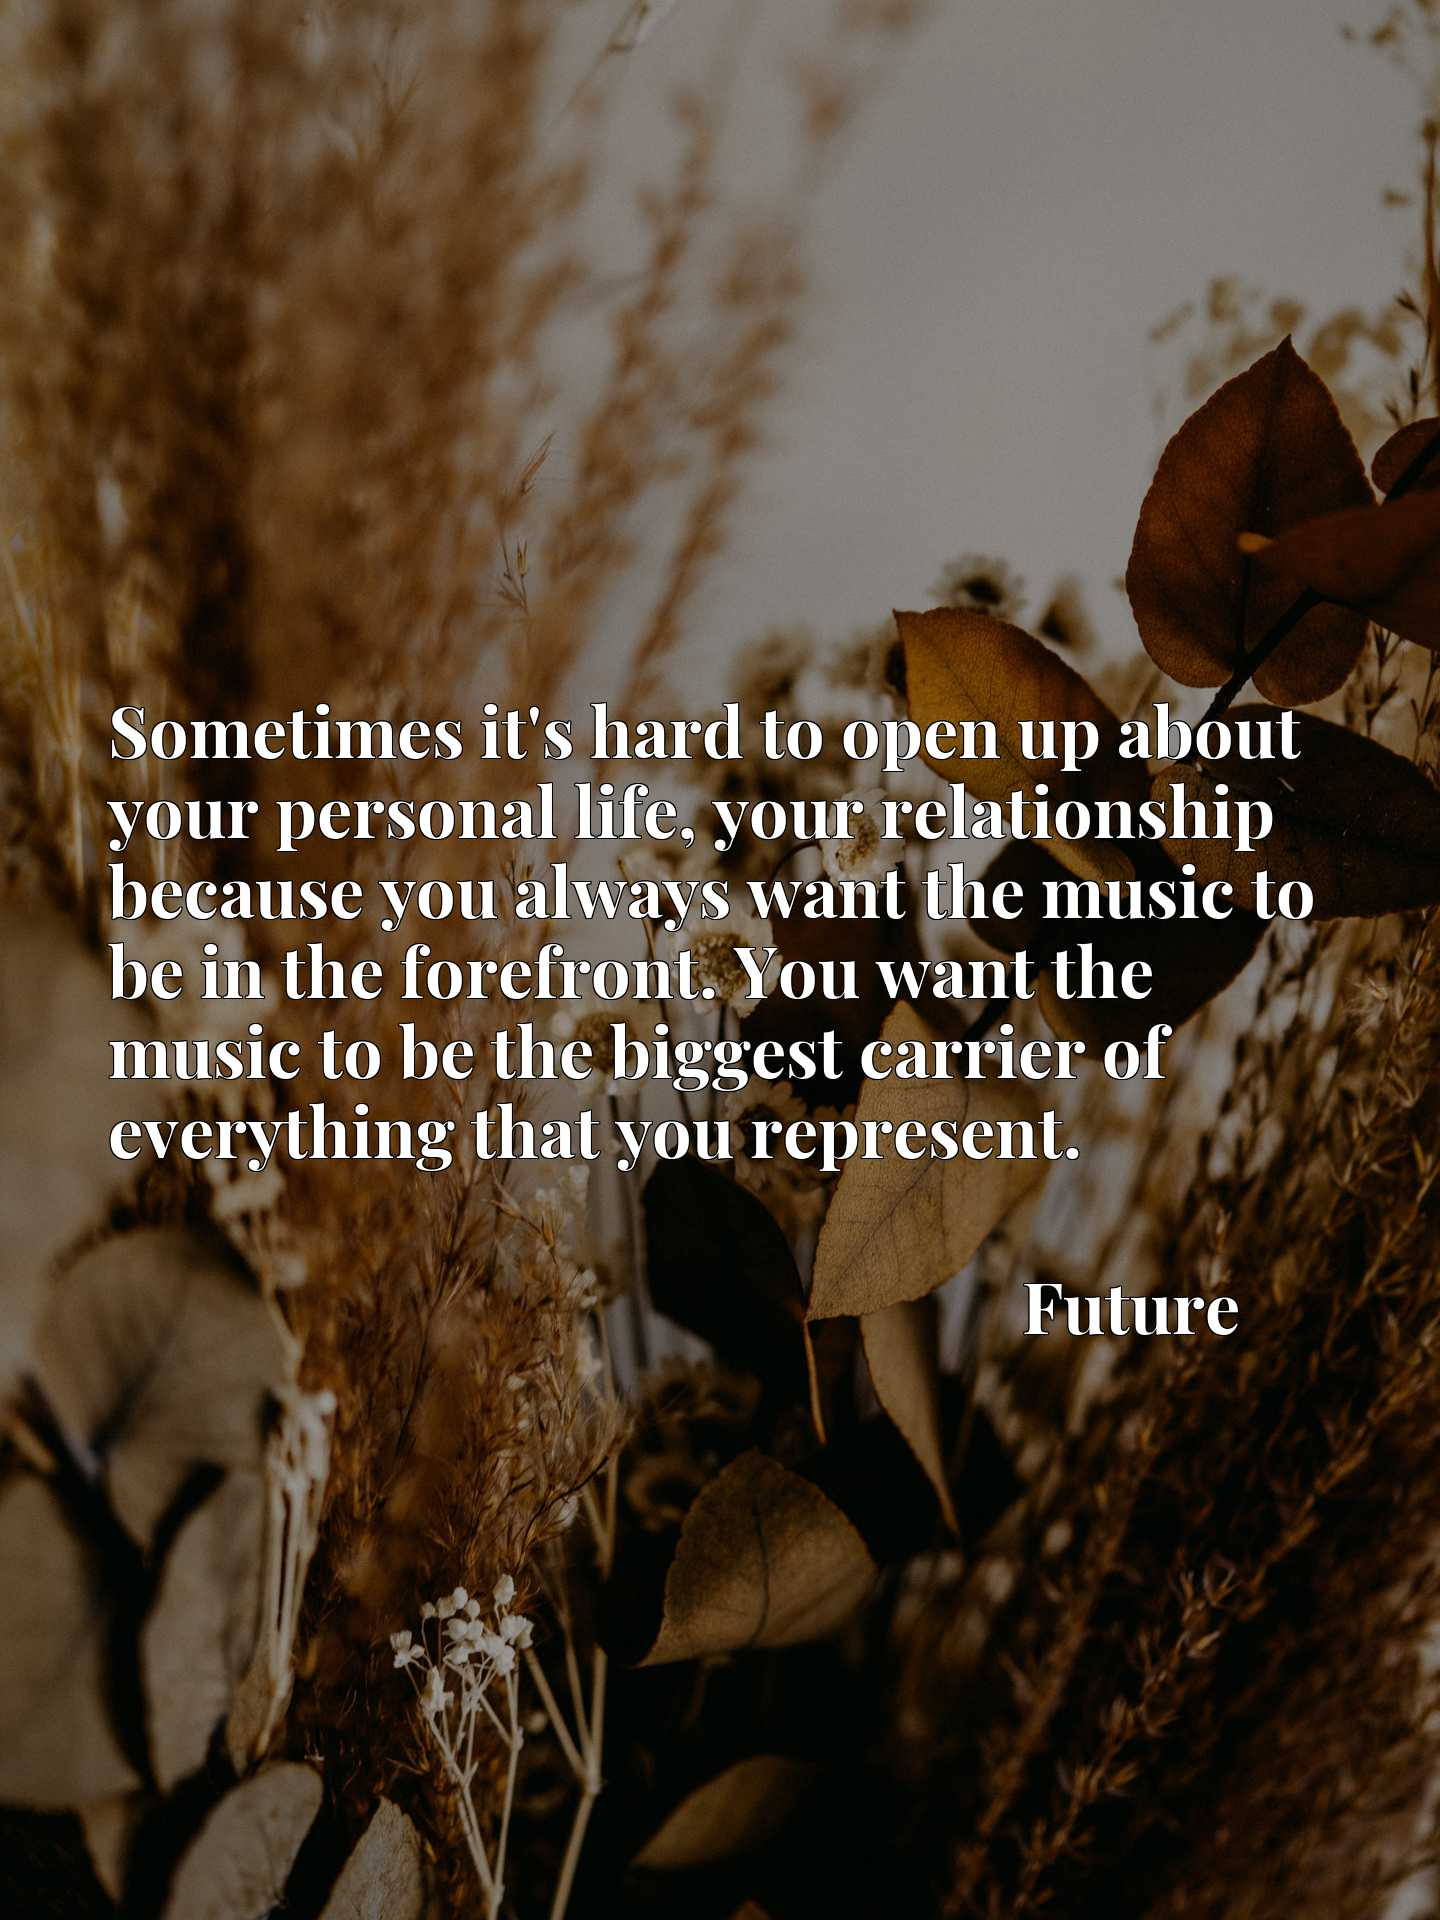 Sometimes it's hard to open up about your personal life, your relationship because you always want the music to be in the forefront. You want the music to be the biggest carrier of everything that you represent.